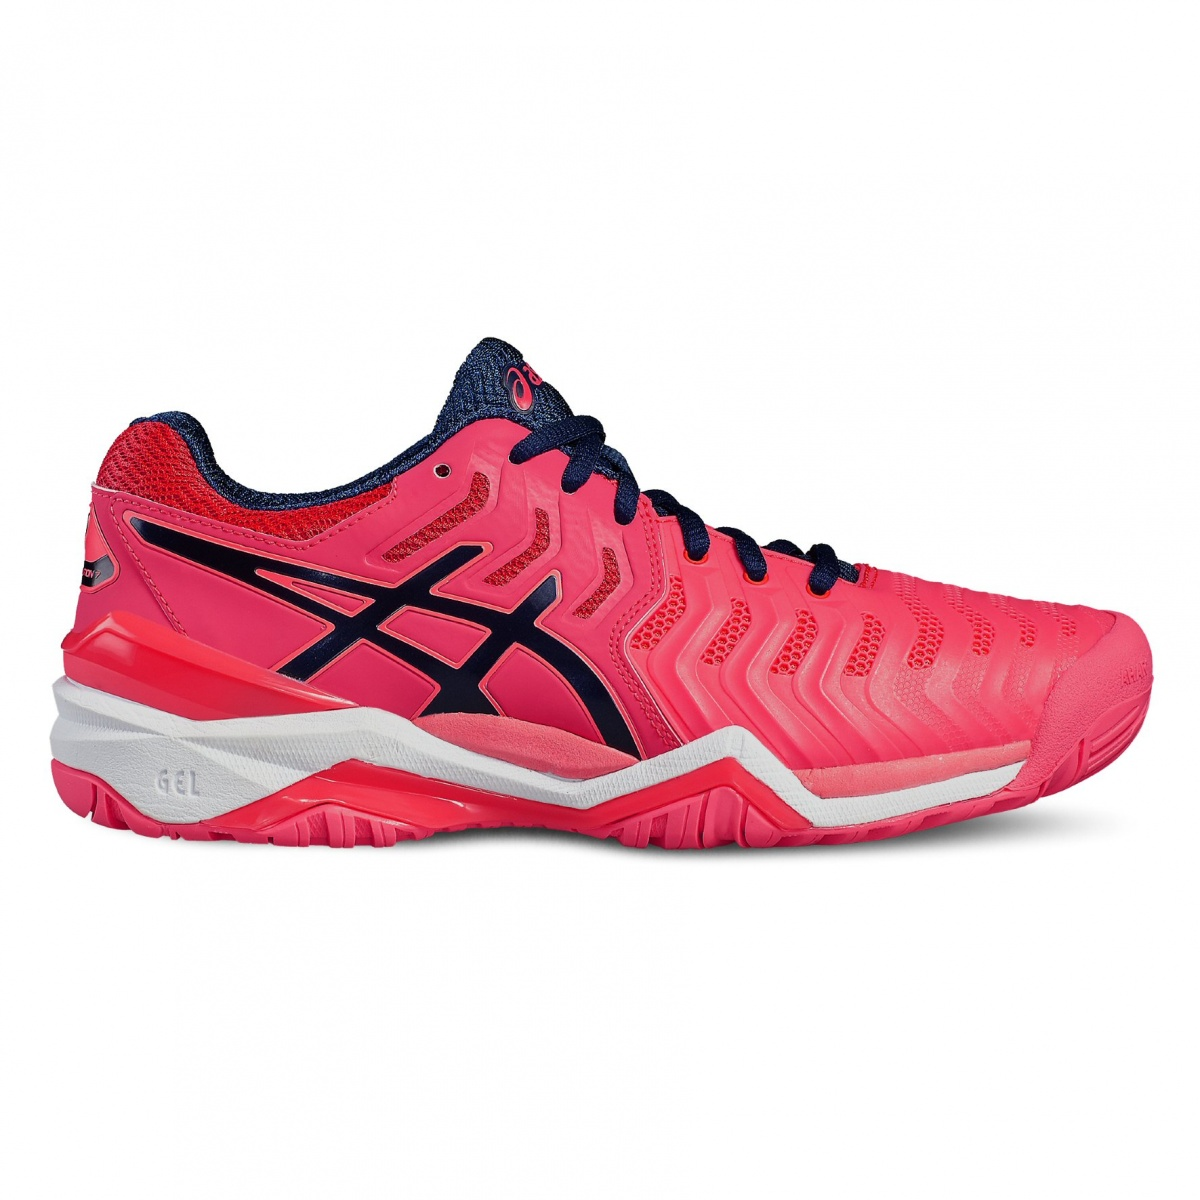 asics gel resolution 7 2017 divapink tennisschuhe damen versandkostenfrei online bestellen. Black Bedroom Furniture Sets. Home Design Ideas